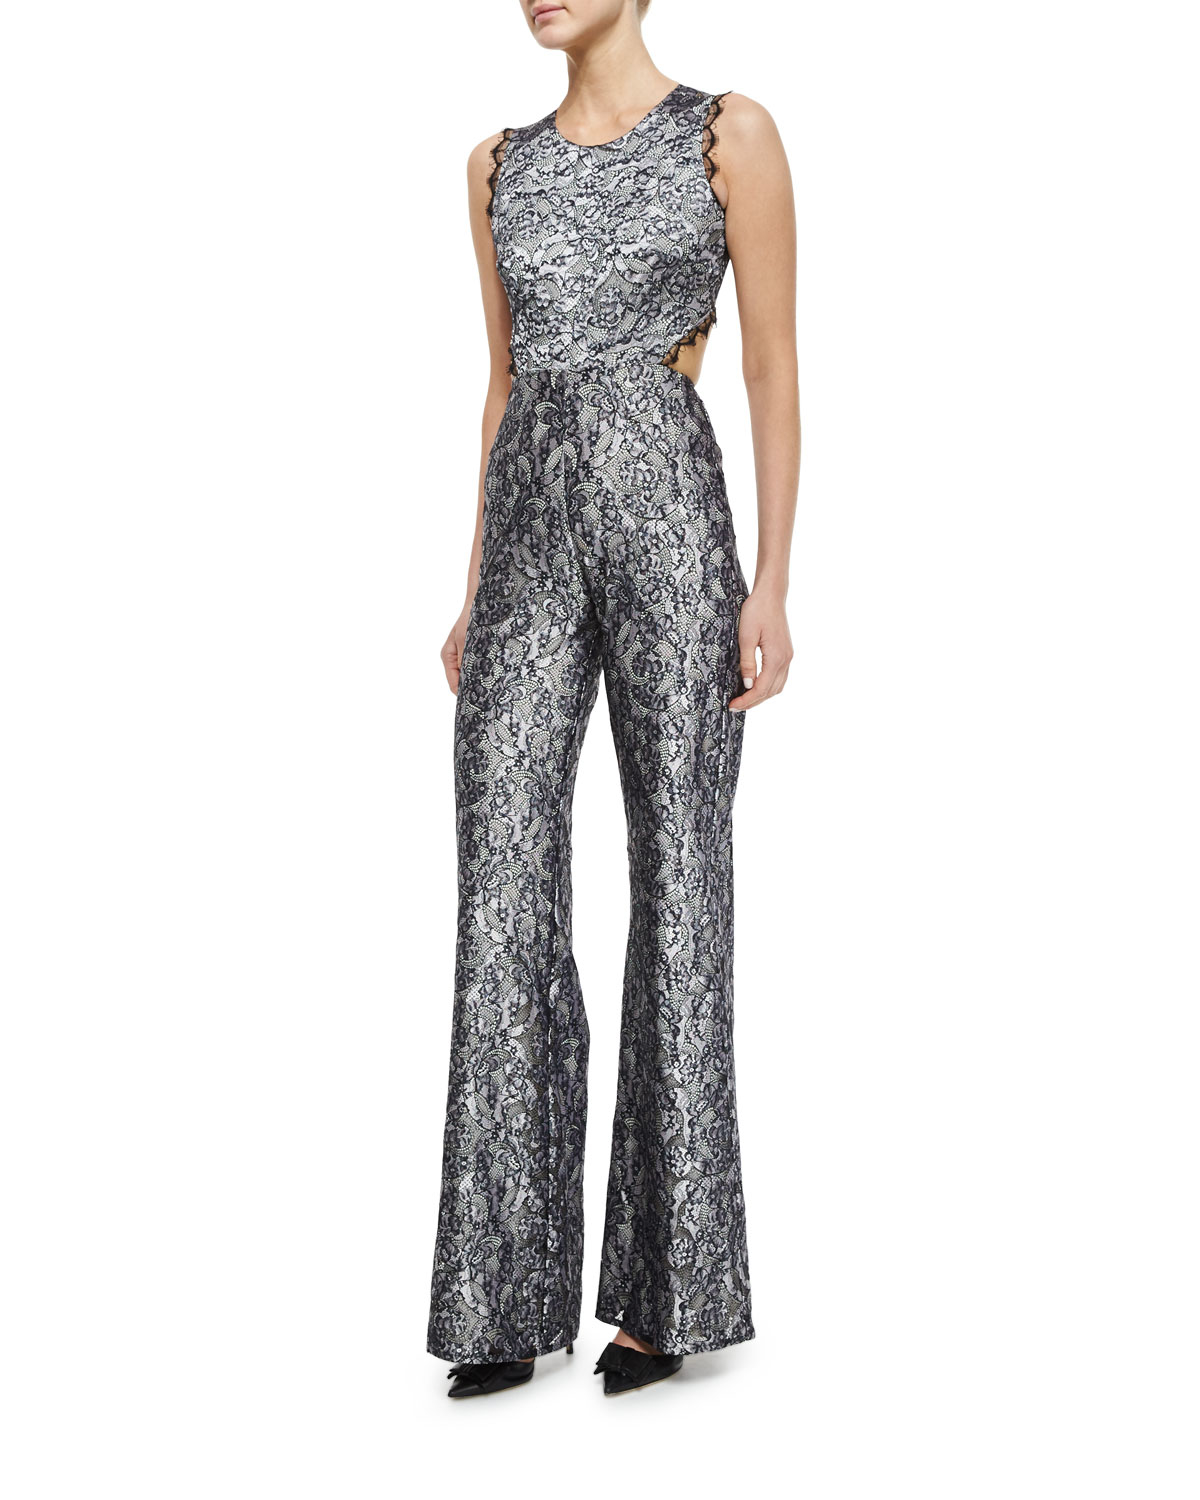 e4a9fcb6952 Alexis Sleeveless Floral Lace Jumpsuit in Metallic